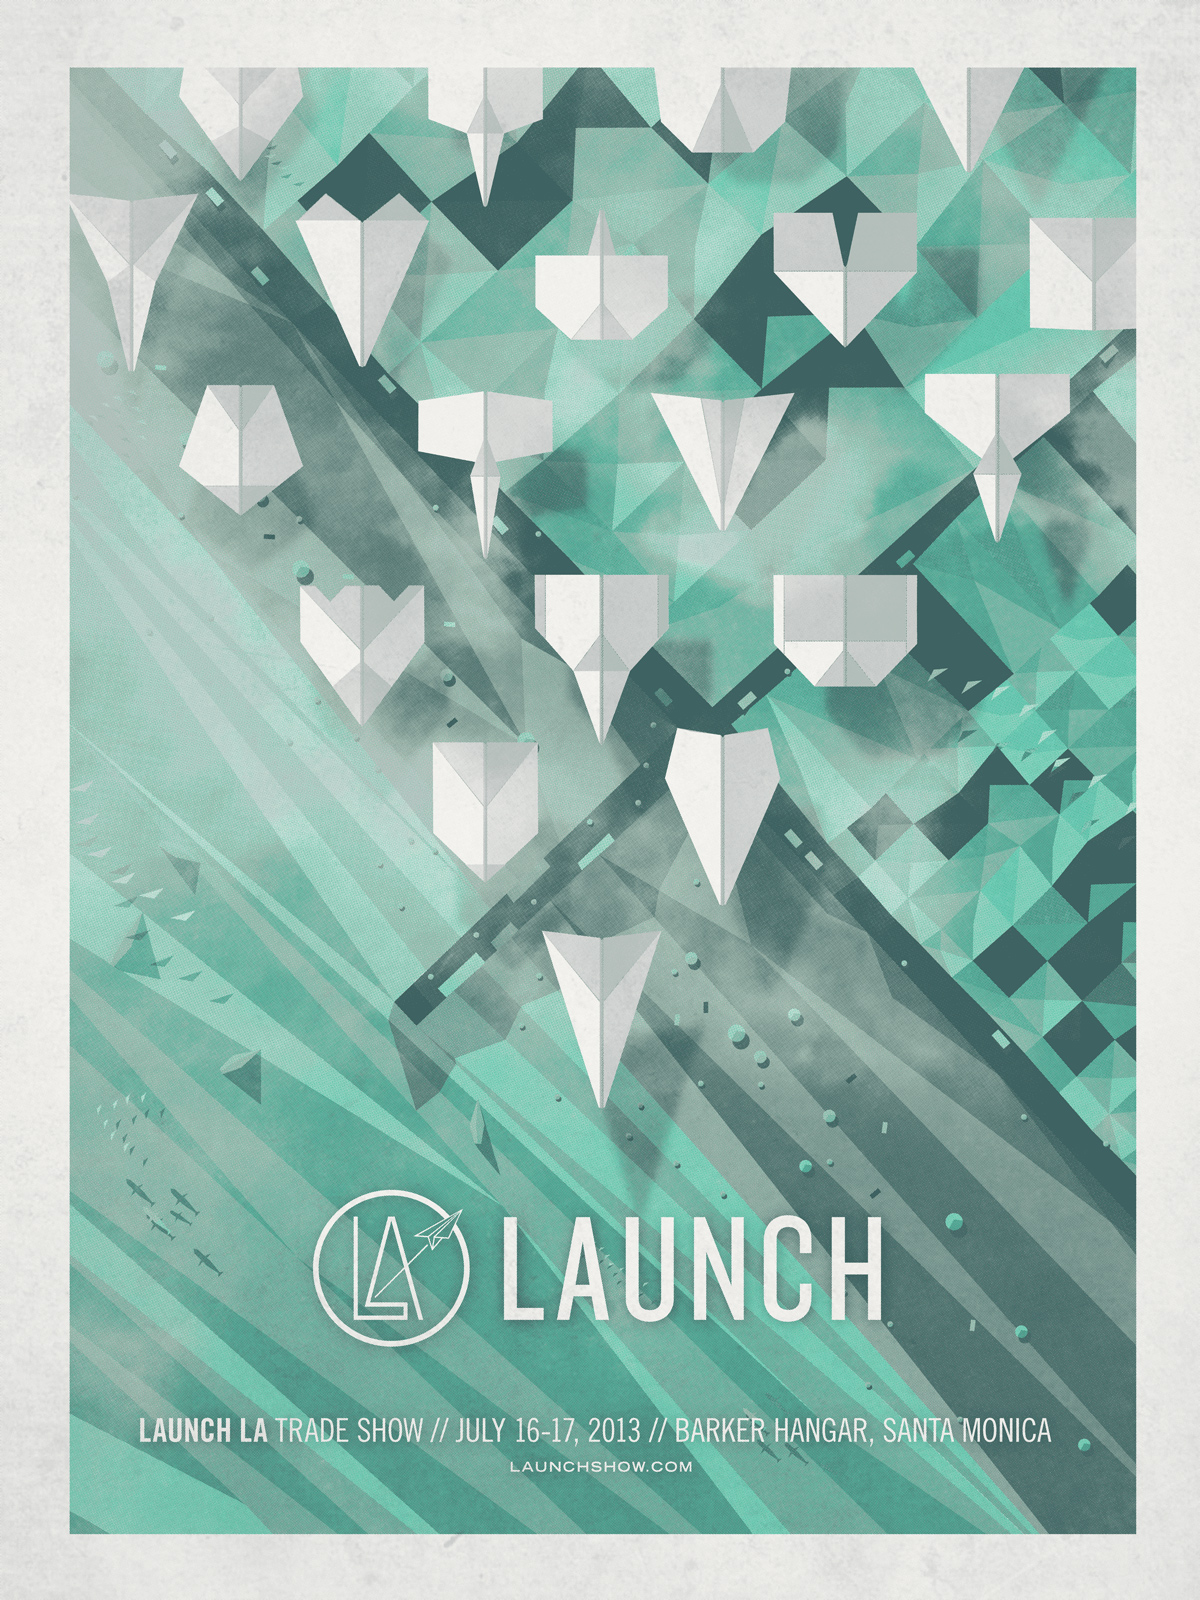 Launch LA Event Poster — DKNG for Creative Event Posters  181obs